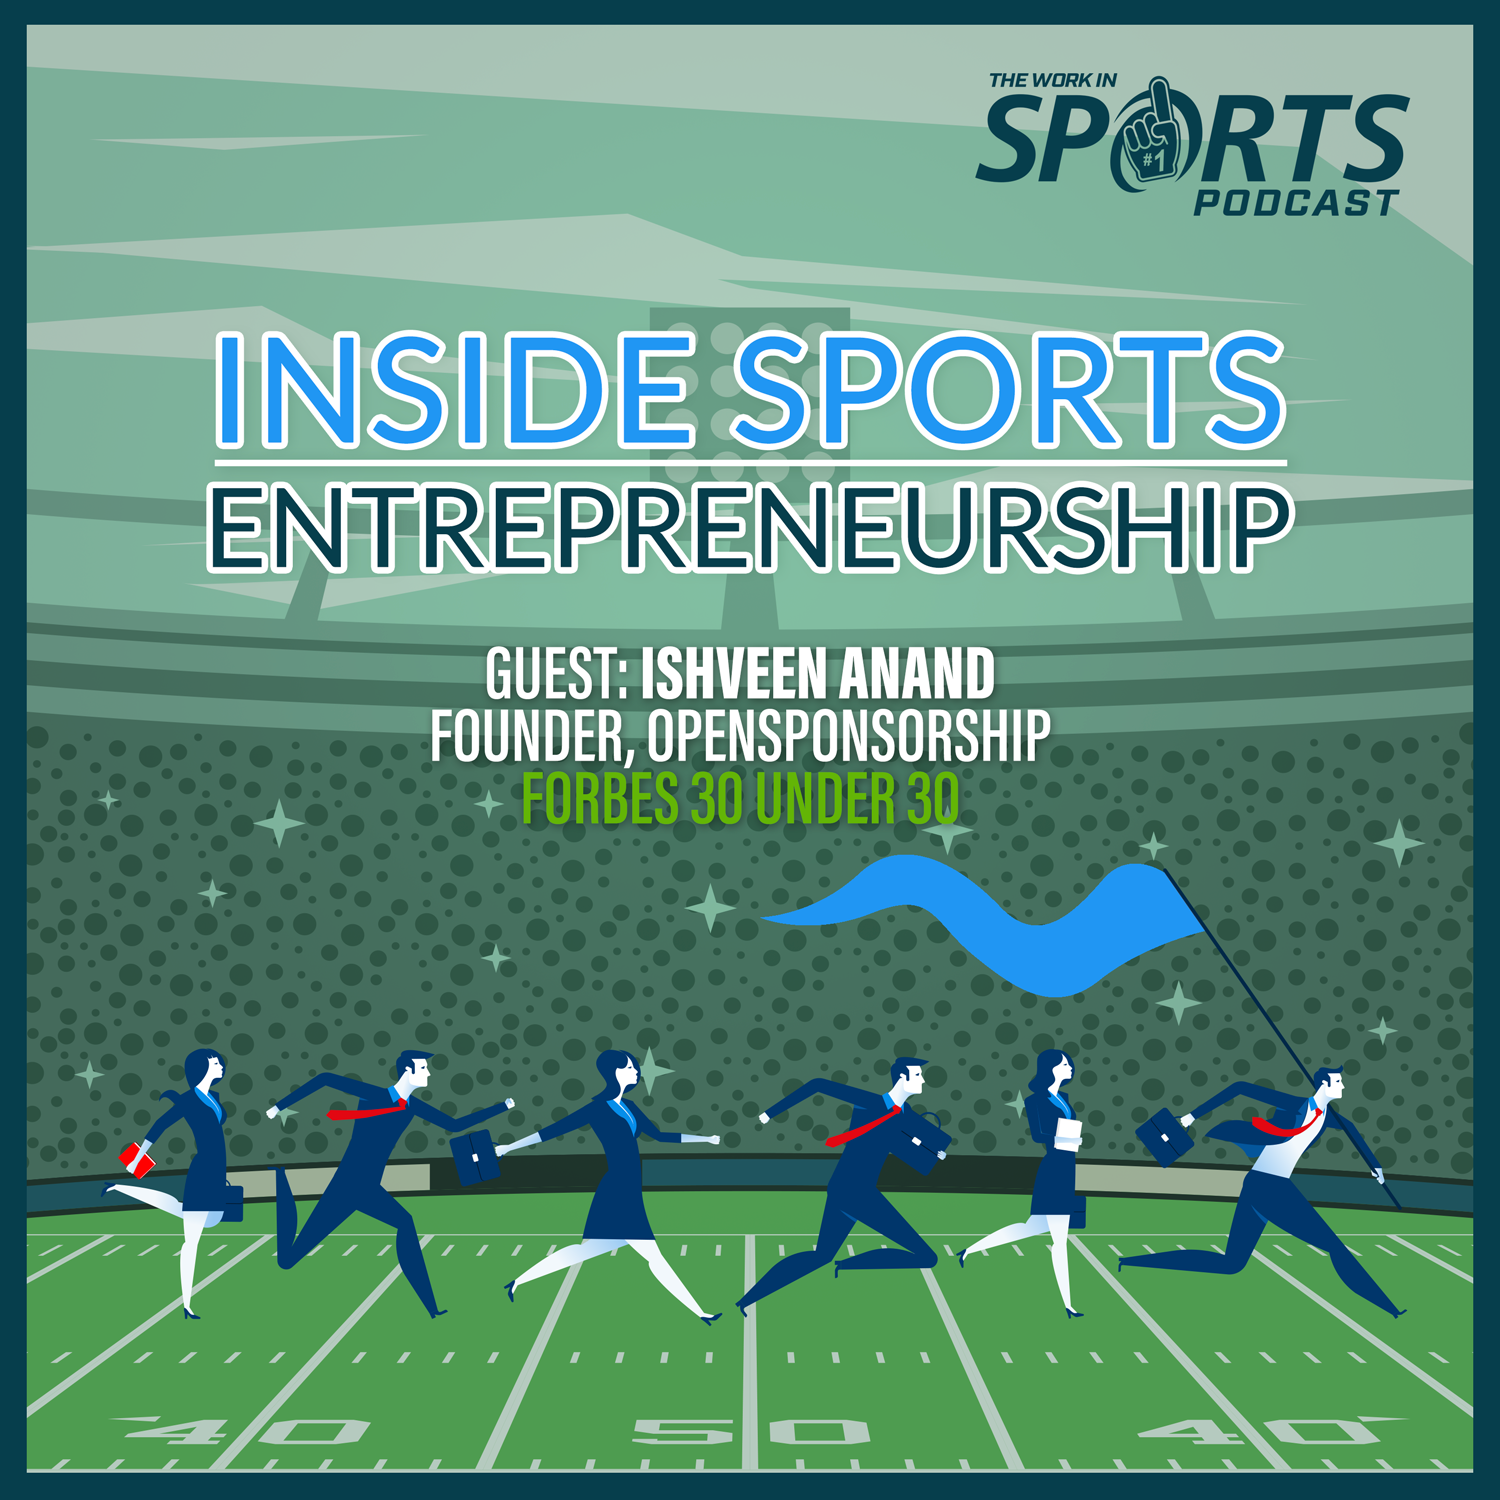 Ishveen Anand opensponsorship work in sports podcast